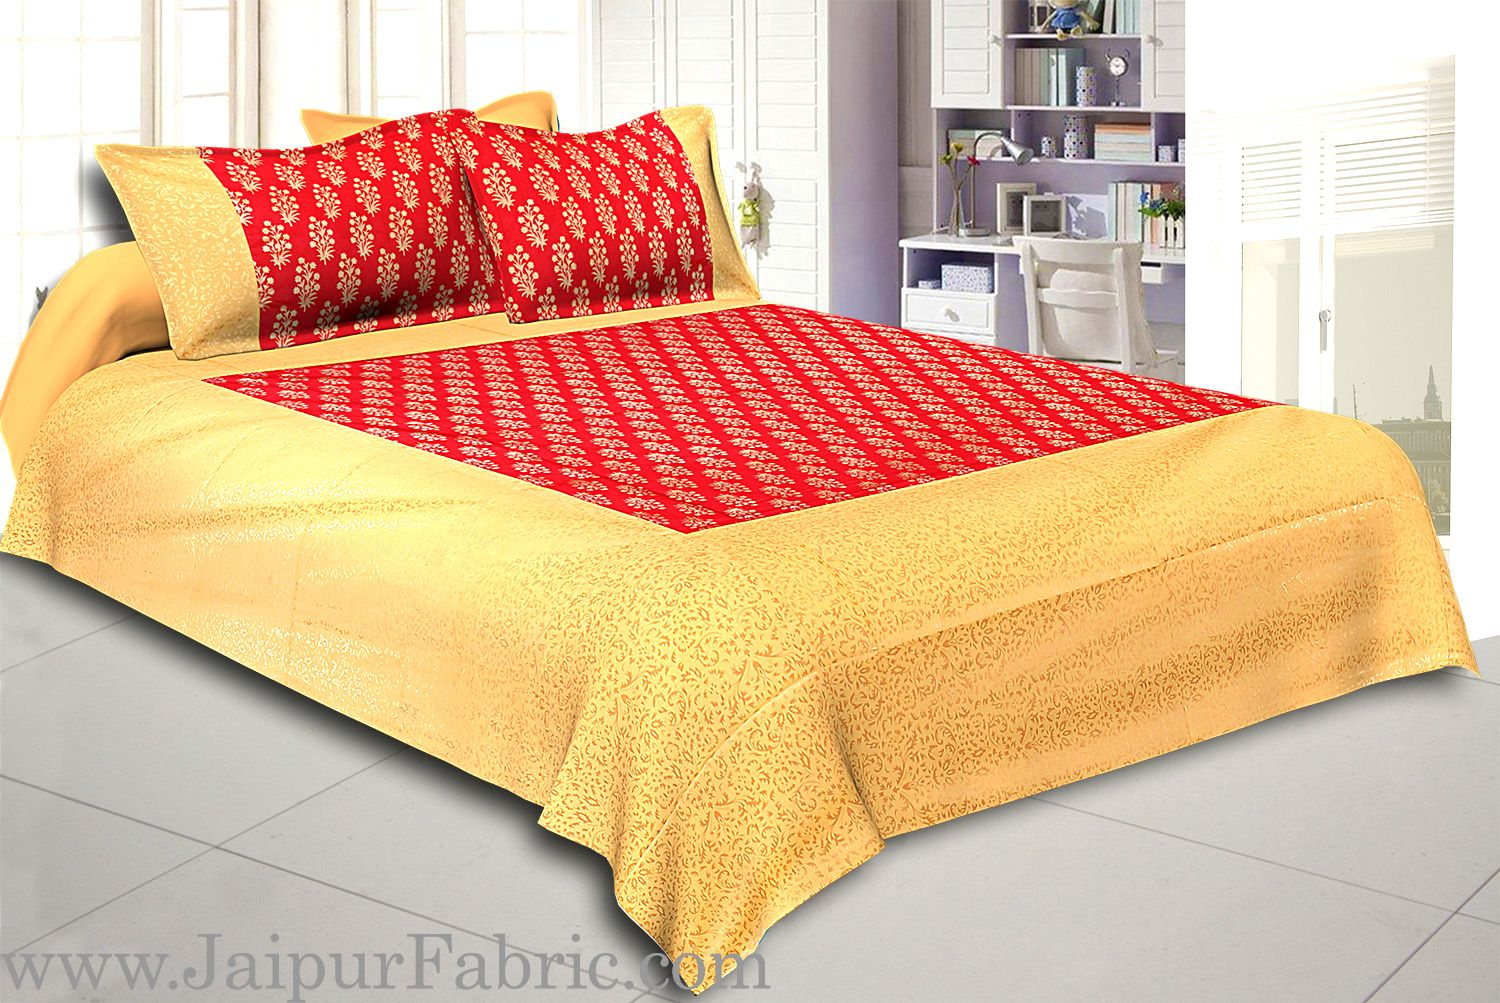 Cream Broad Border With Shining Gold Print Orange Base Gold Flower Bunch Pattern Super Fine Cotton  Double Bed Sheet